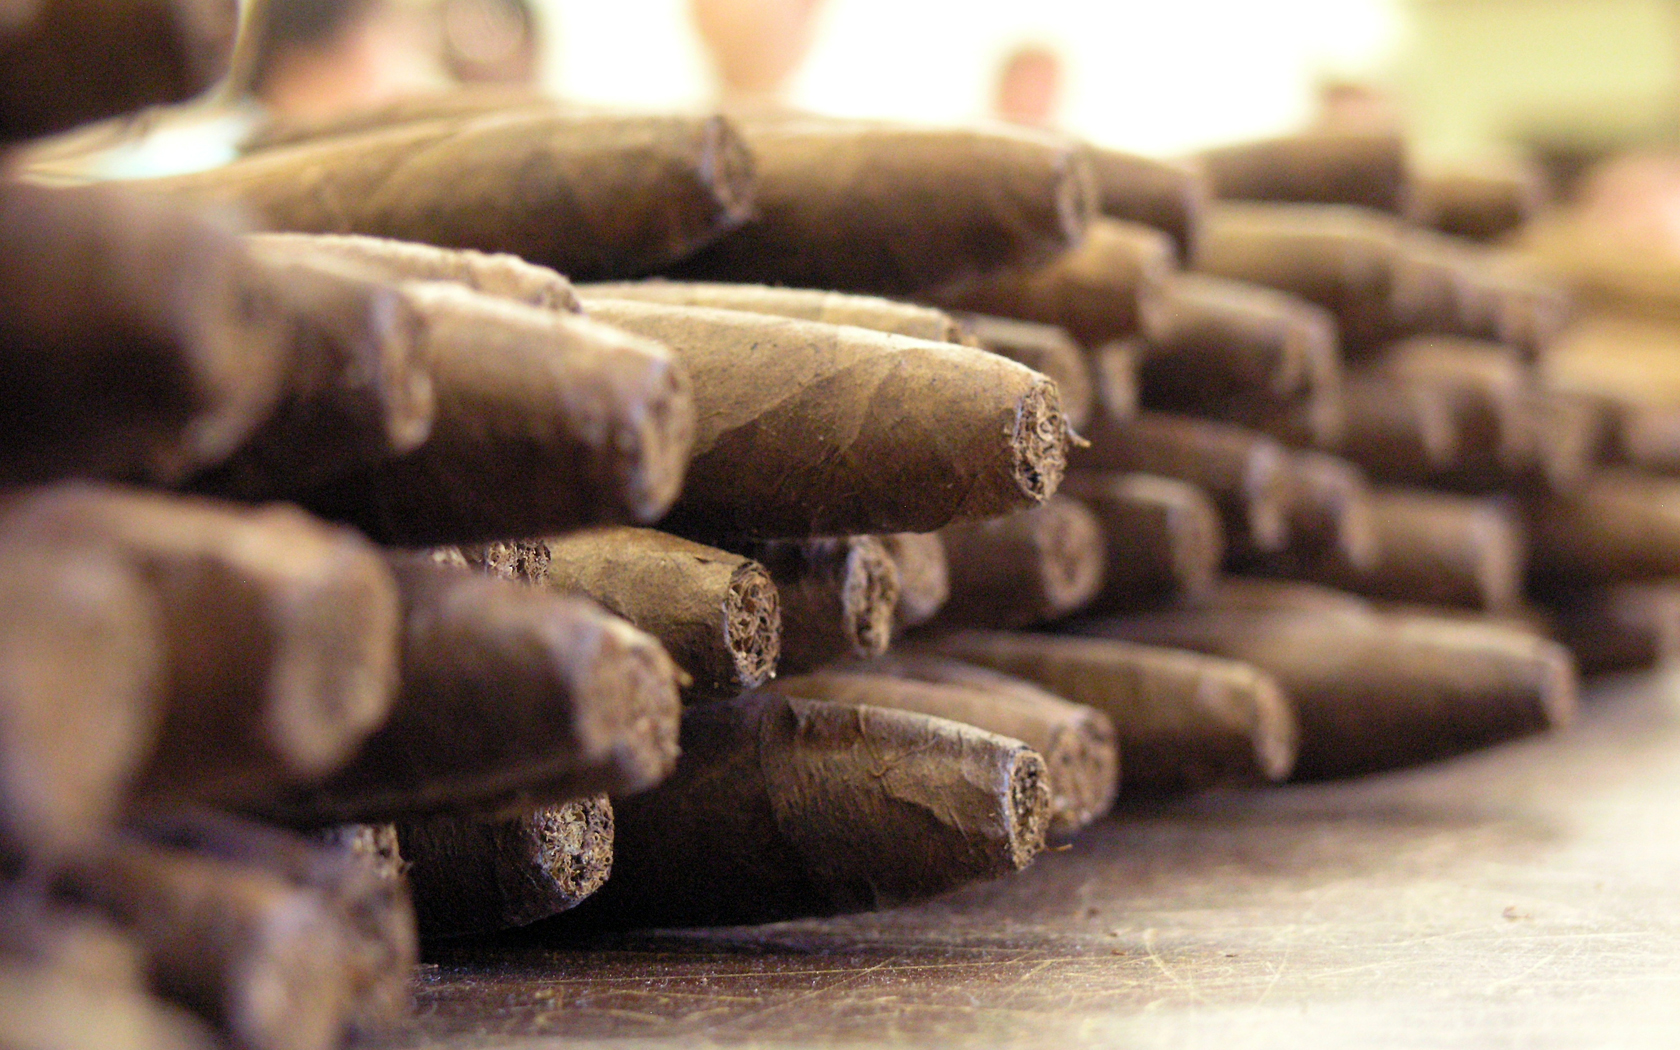 Image Caribbean Cigars Wallpapers And Stock Photos